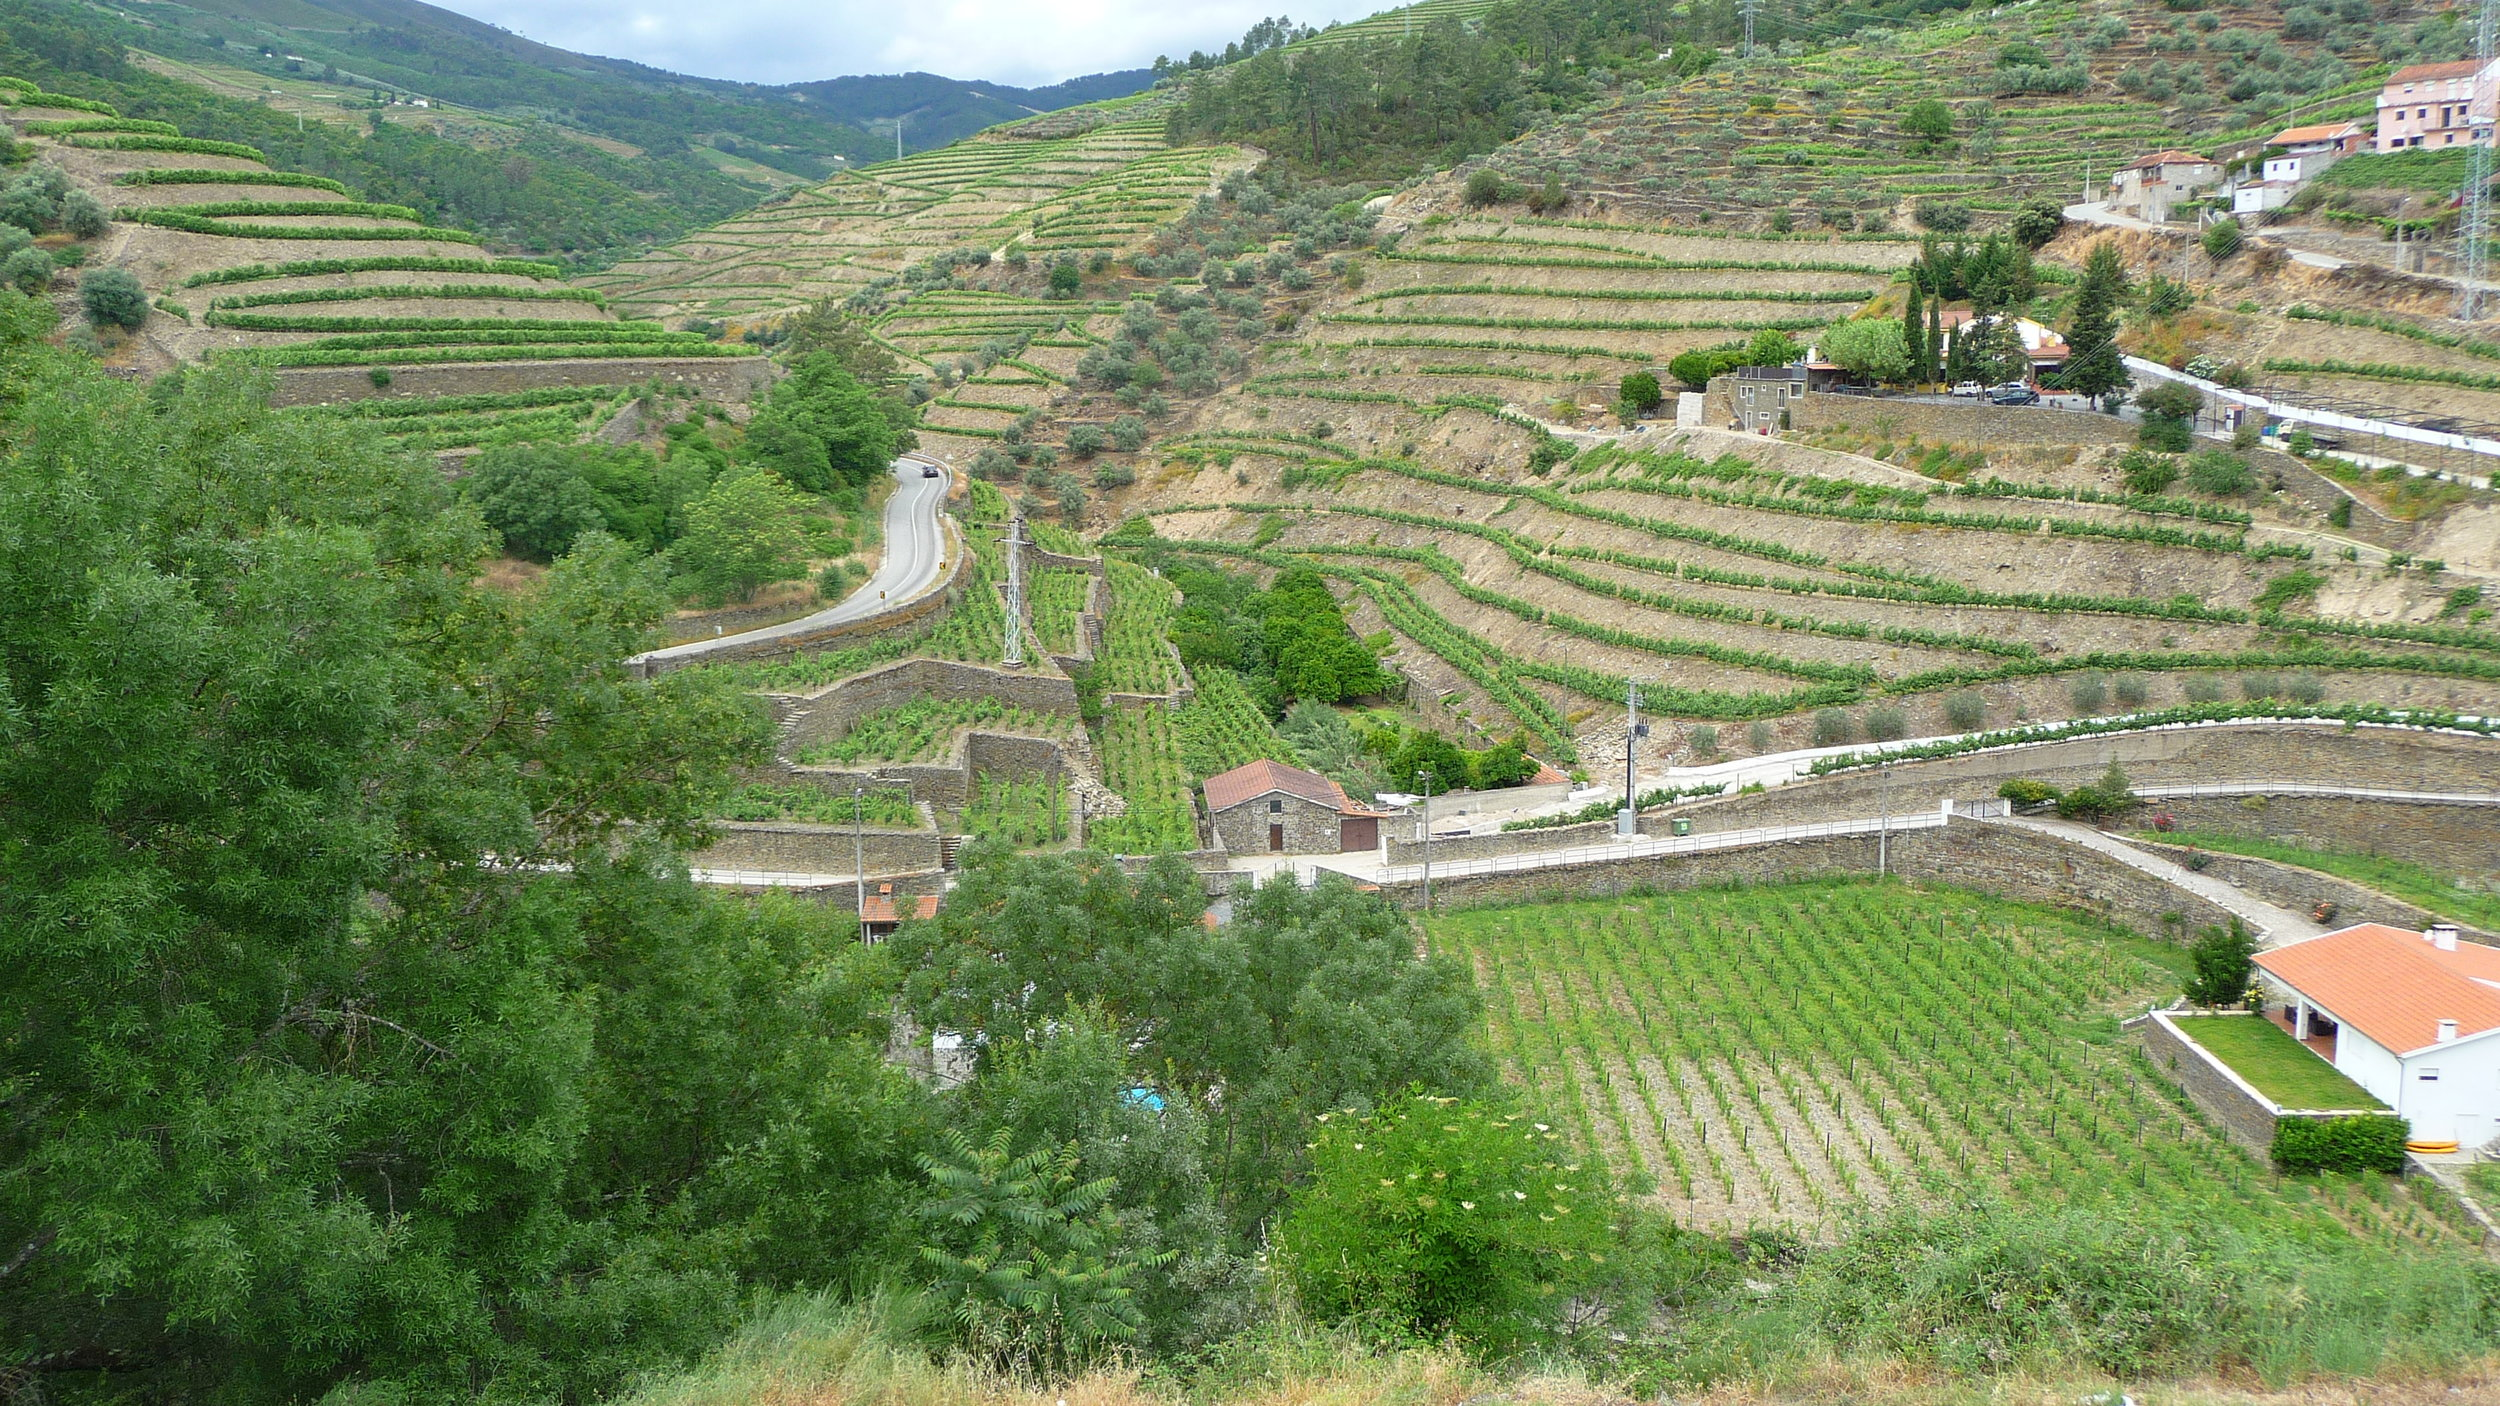 Distinctive stepped terraces rise from the valley floor to flank both sides of the Douro River between Peso de Régua and Pinhão. Viki Eierdam